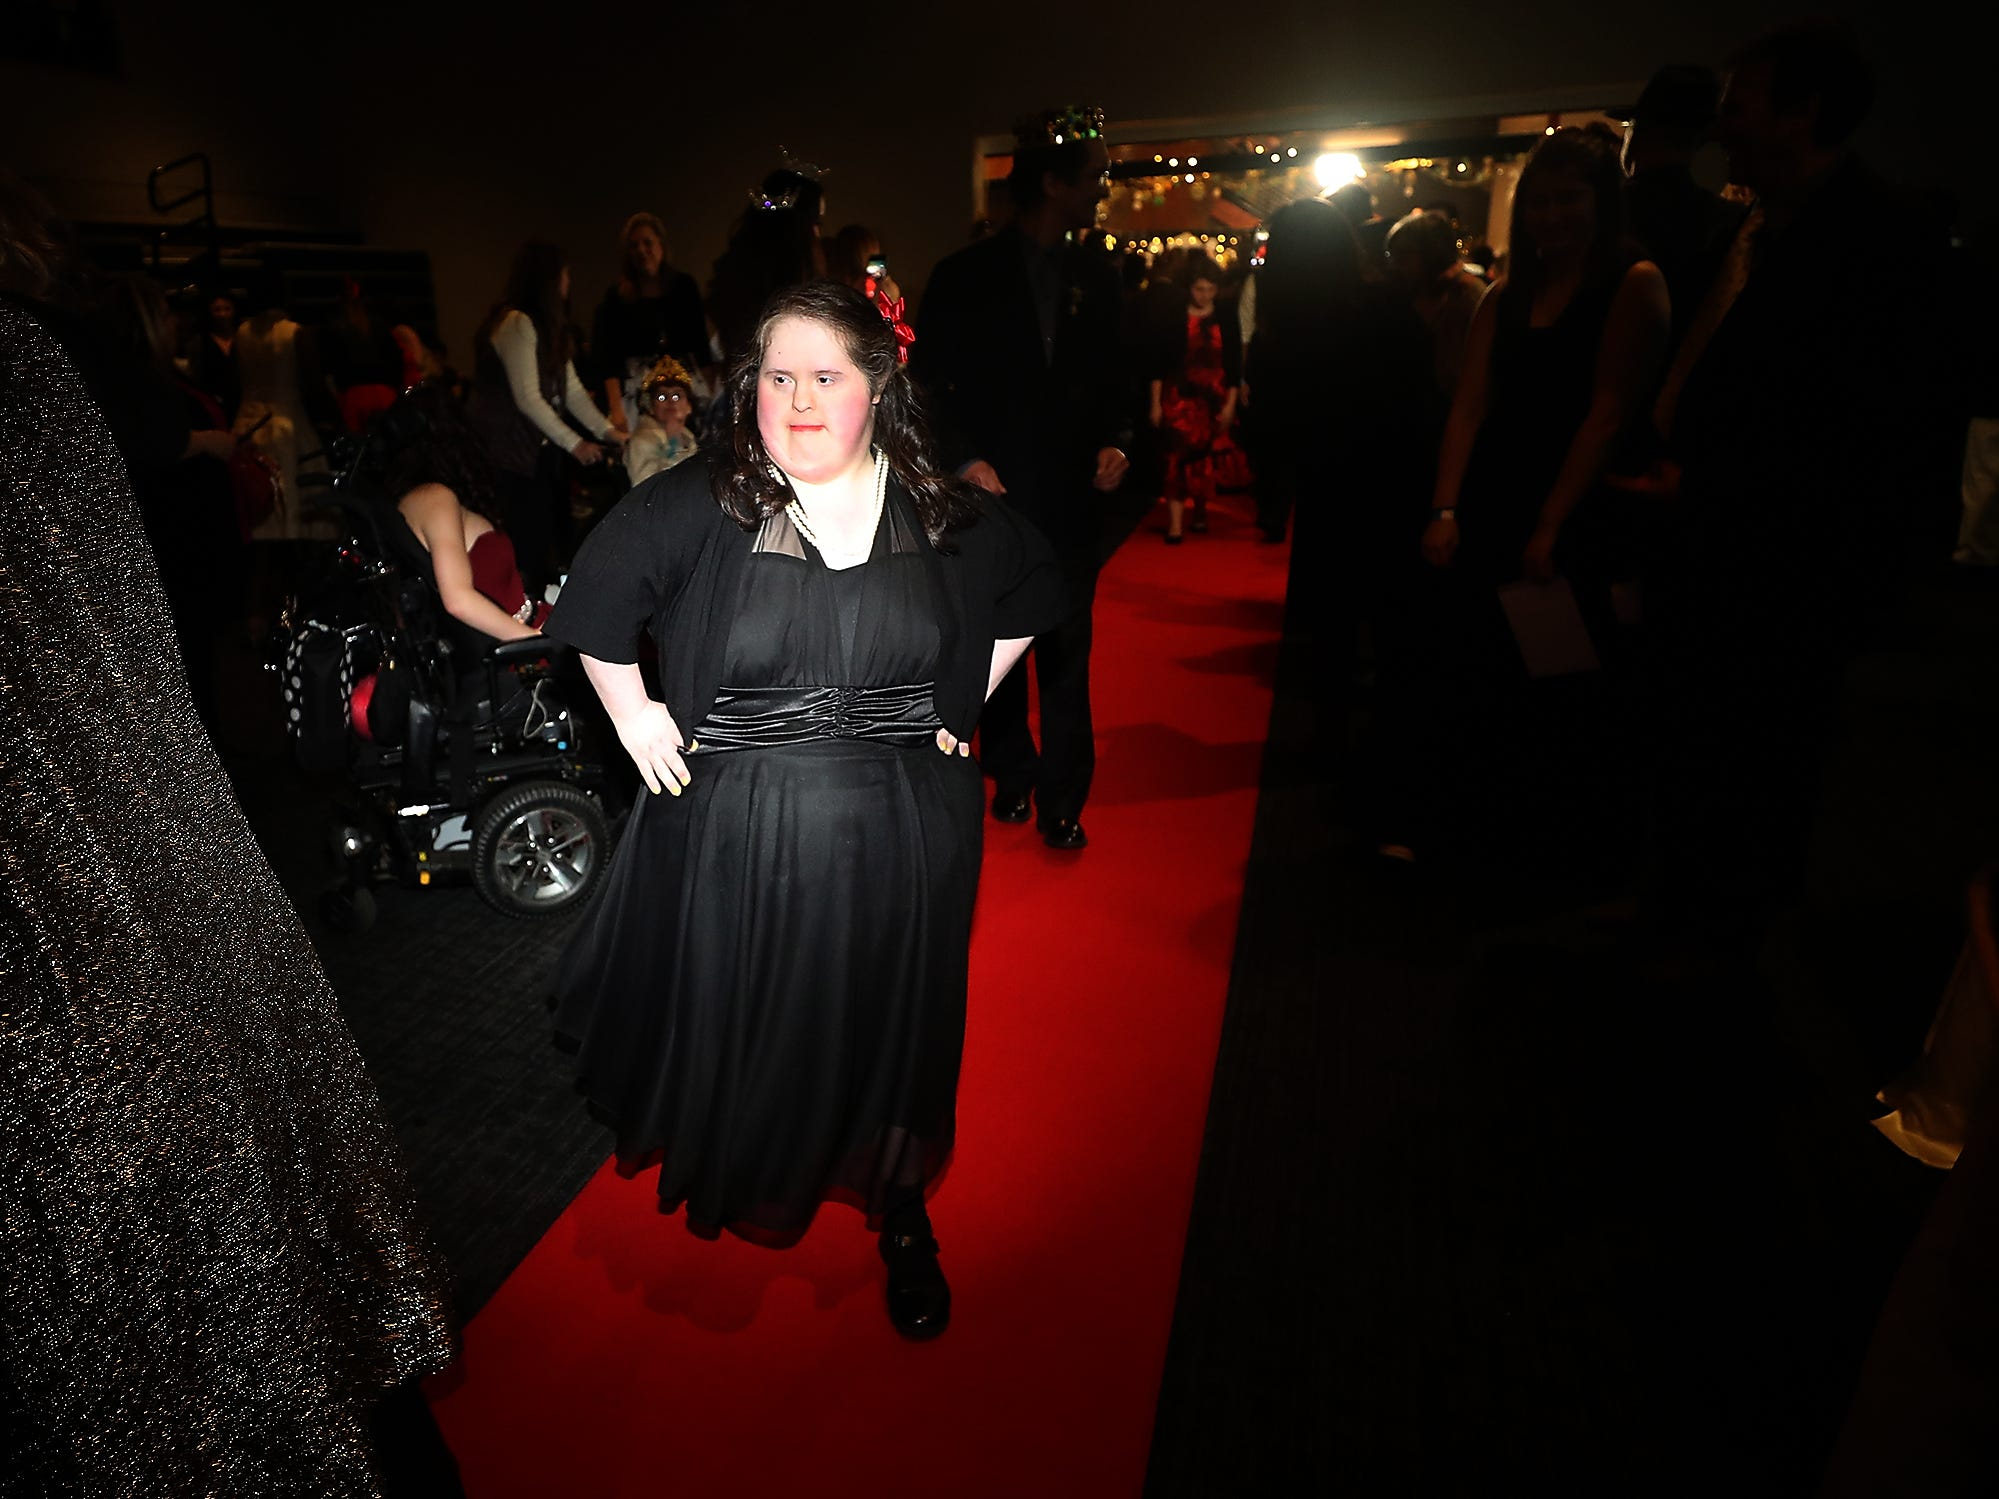 Amanda Medina sashays down the red carpet during the Night To Shine at the newlife Training & Events Center in Silverdale on Friday, March 8, 2019.